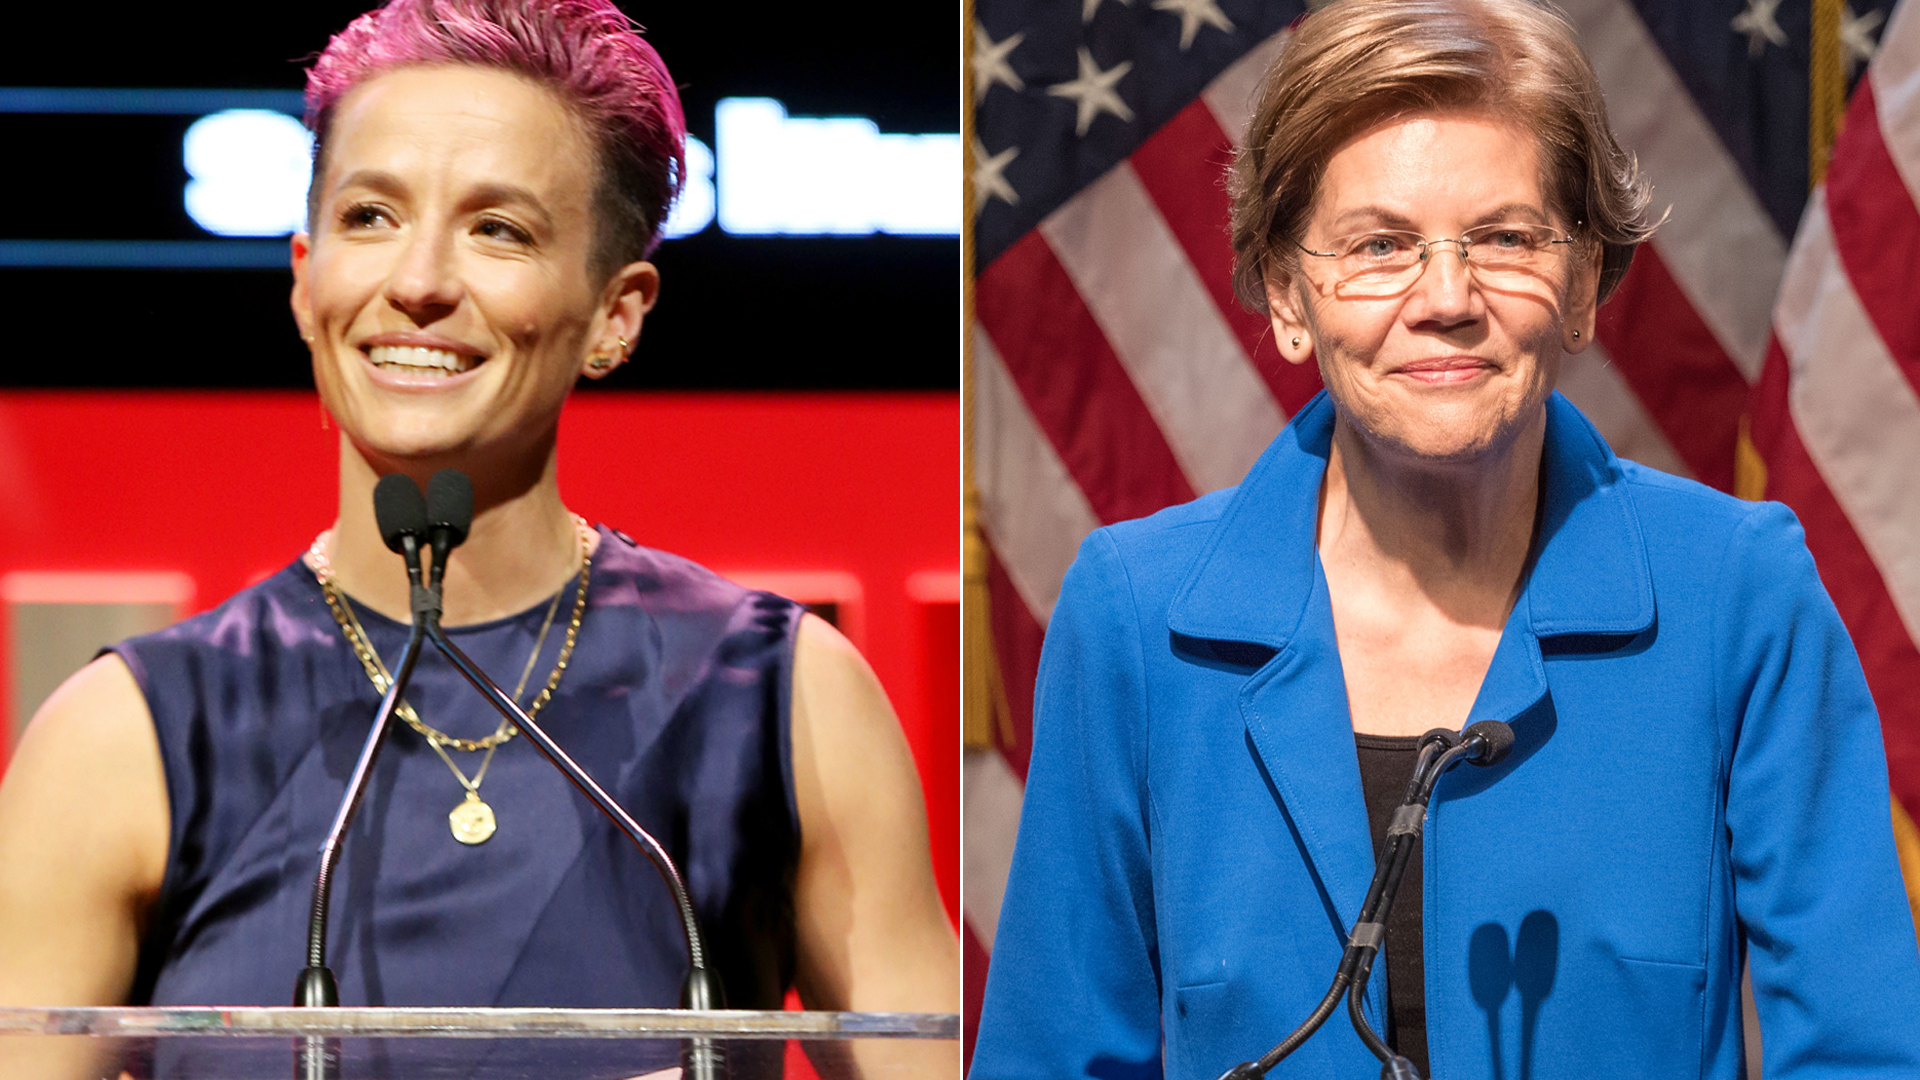 Megan Rapinoe, left, speaks at the Sports Illustrated Sportsperson Of The Year 2019 at the Ziegfeld Ballroom on Dec. 9, 2019 in New York City. Sen. Elizabeth Warren (D-MA), left, speaks on Dec. 12, 2019 in Manchester, New Hampshire.(Credit: Bennett Raglin/Getty Images for Sports Illustrated Sportsperson of the Year 2019; Scott Eisen/Getty Images)